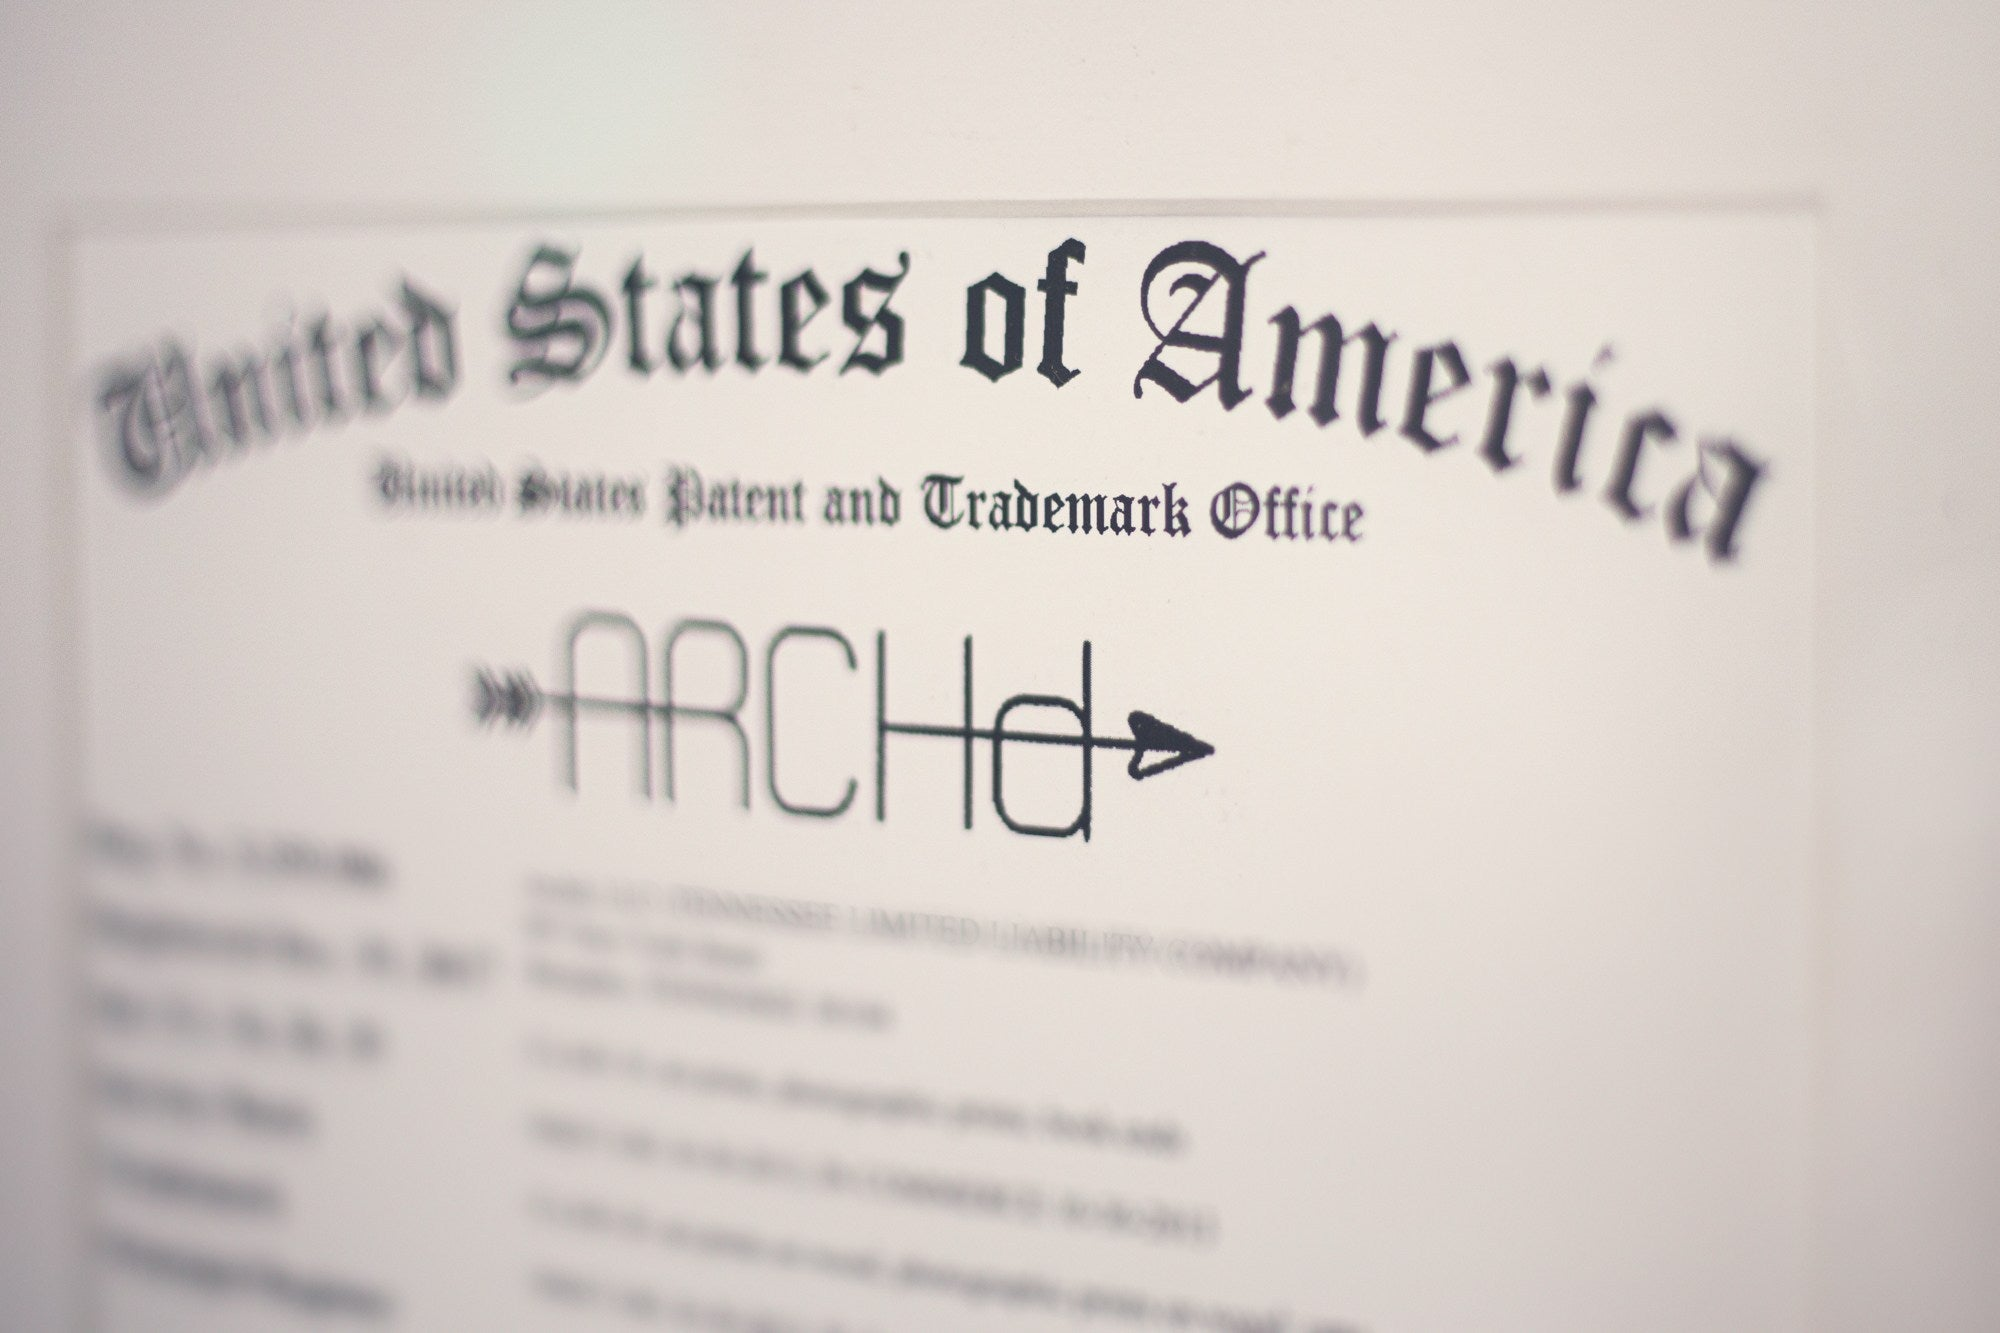 ARCHd United States Patent and Trademark Office certificate